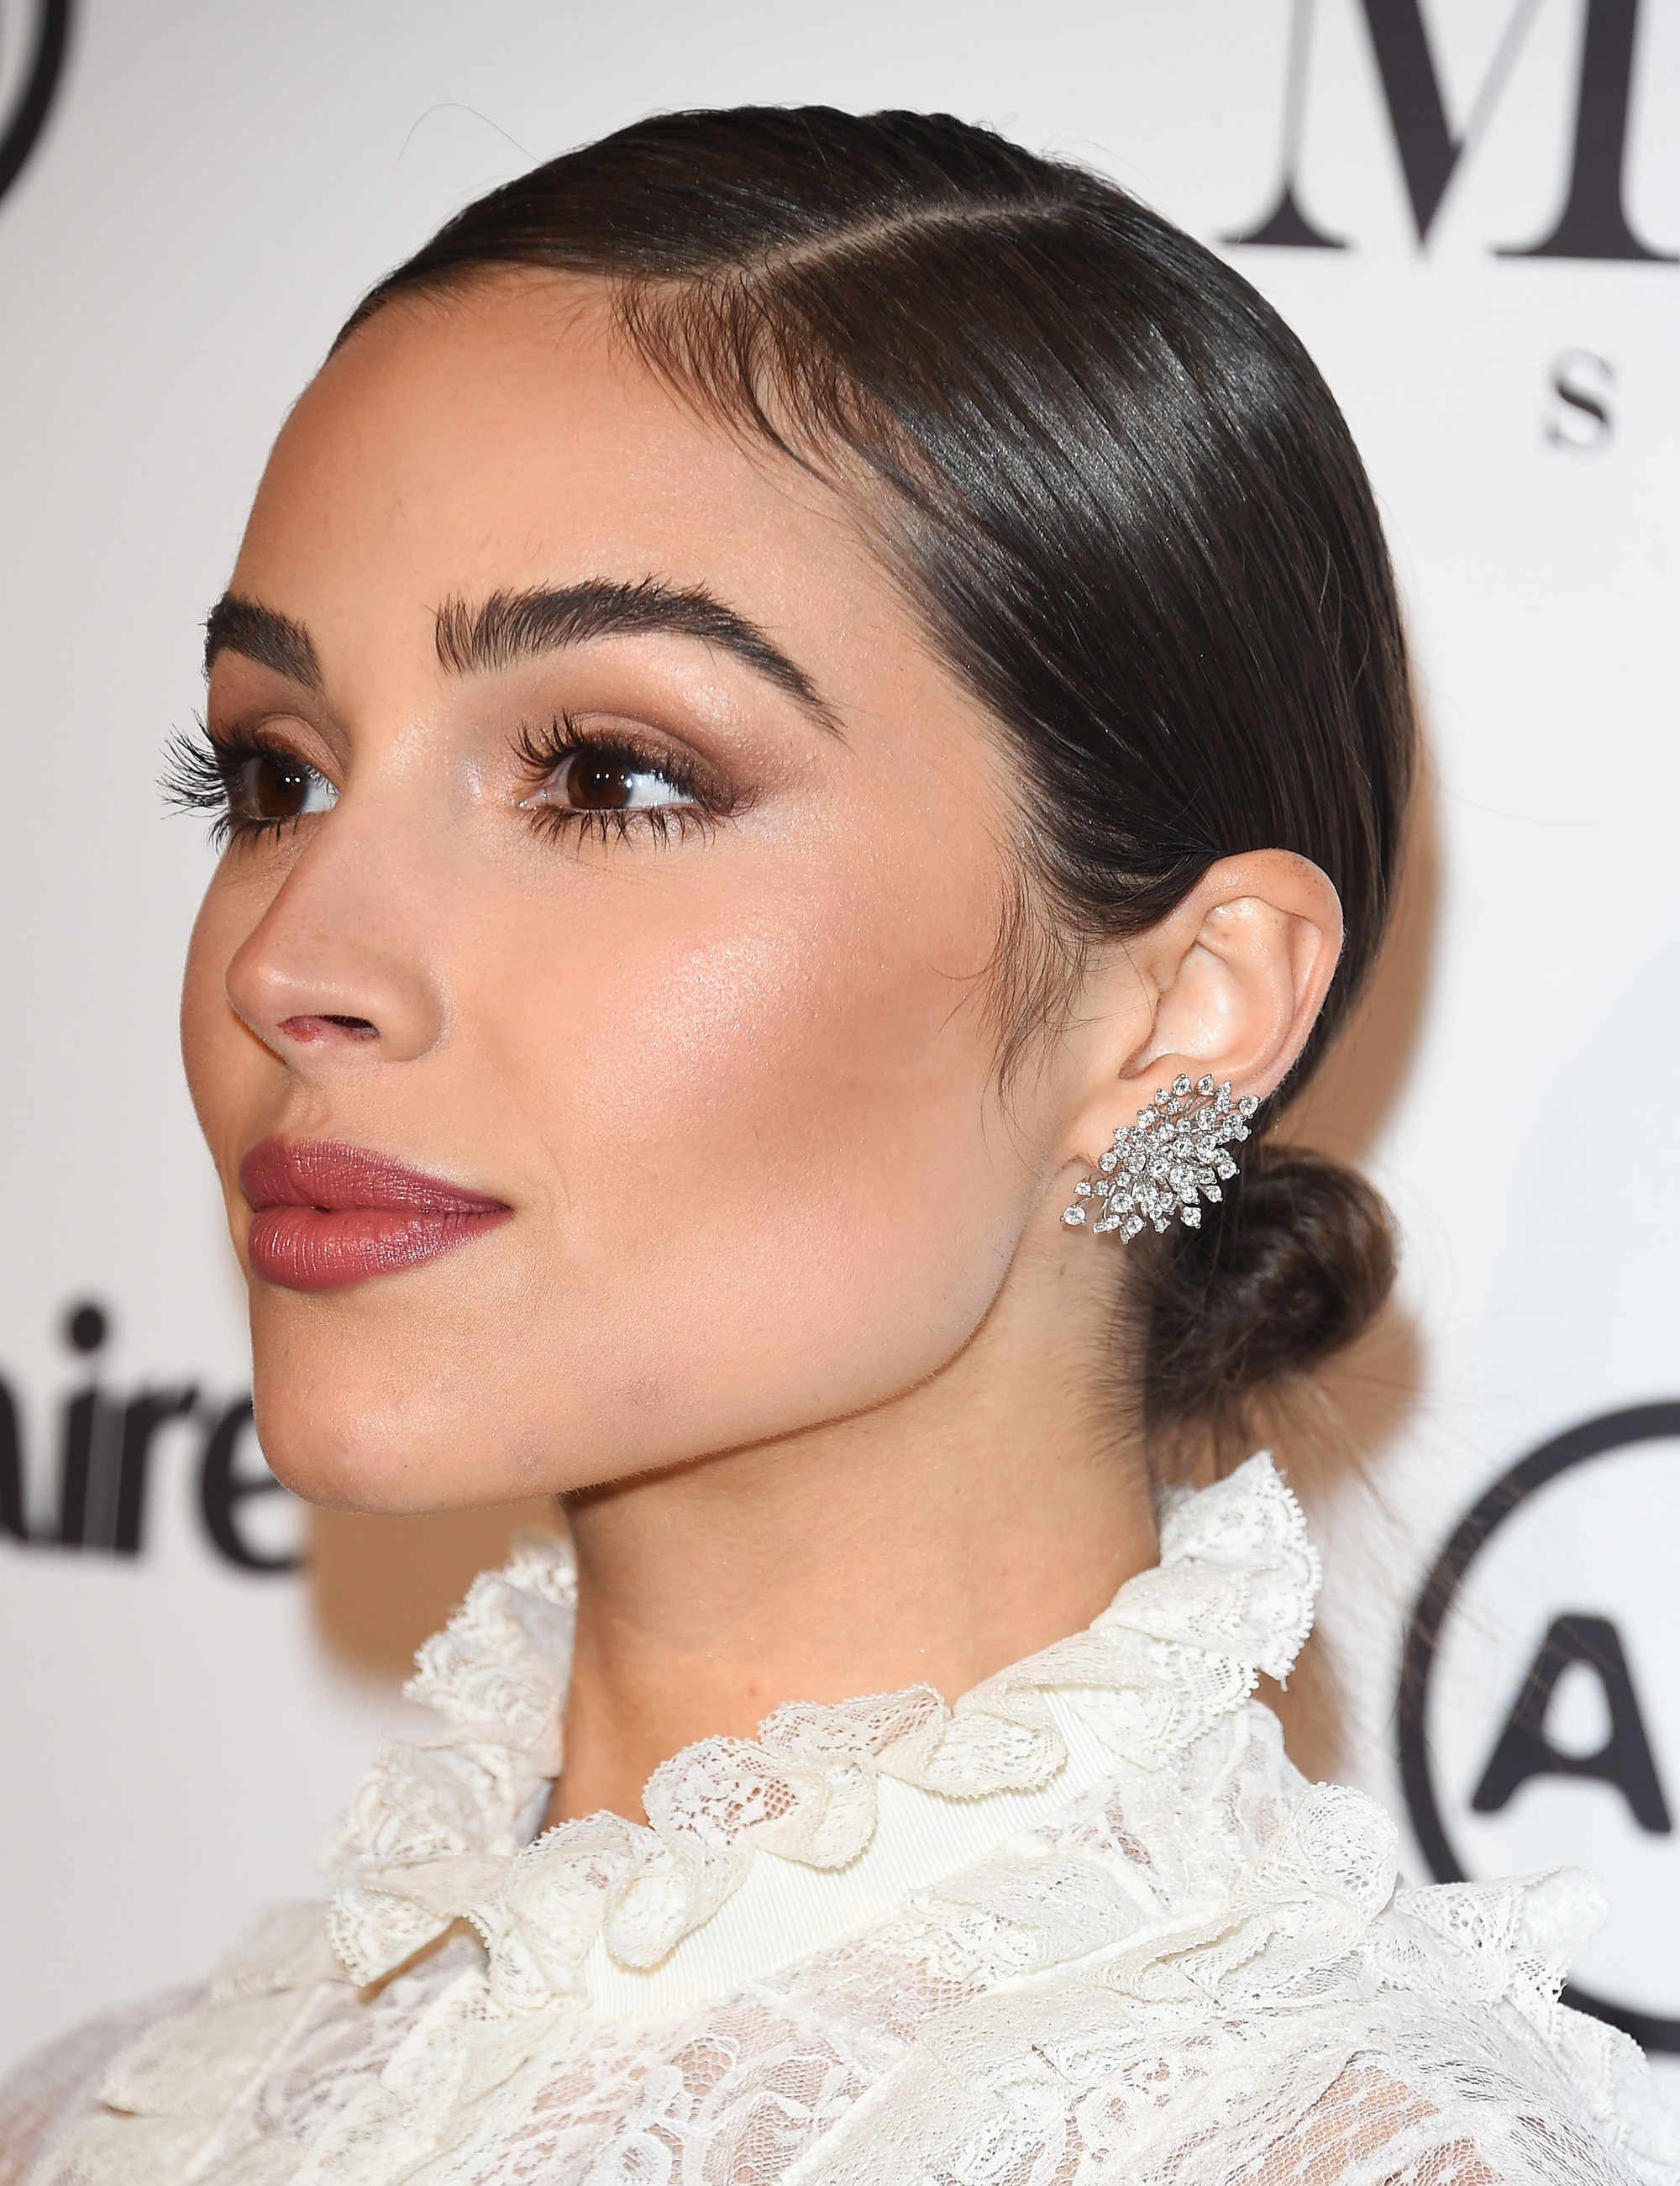 prom updos: model olivia culpo with shiny glossy dark hair with a side parting and low bun